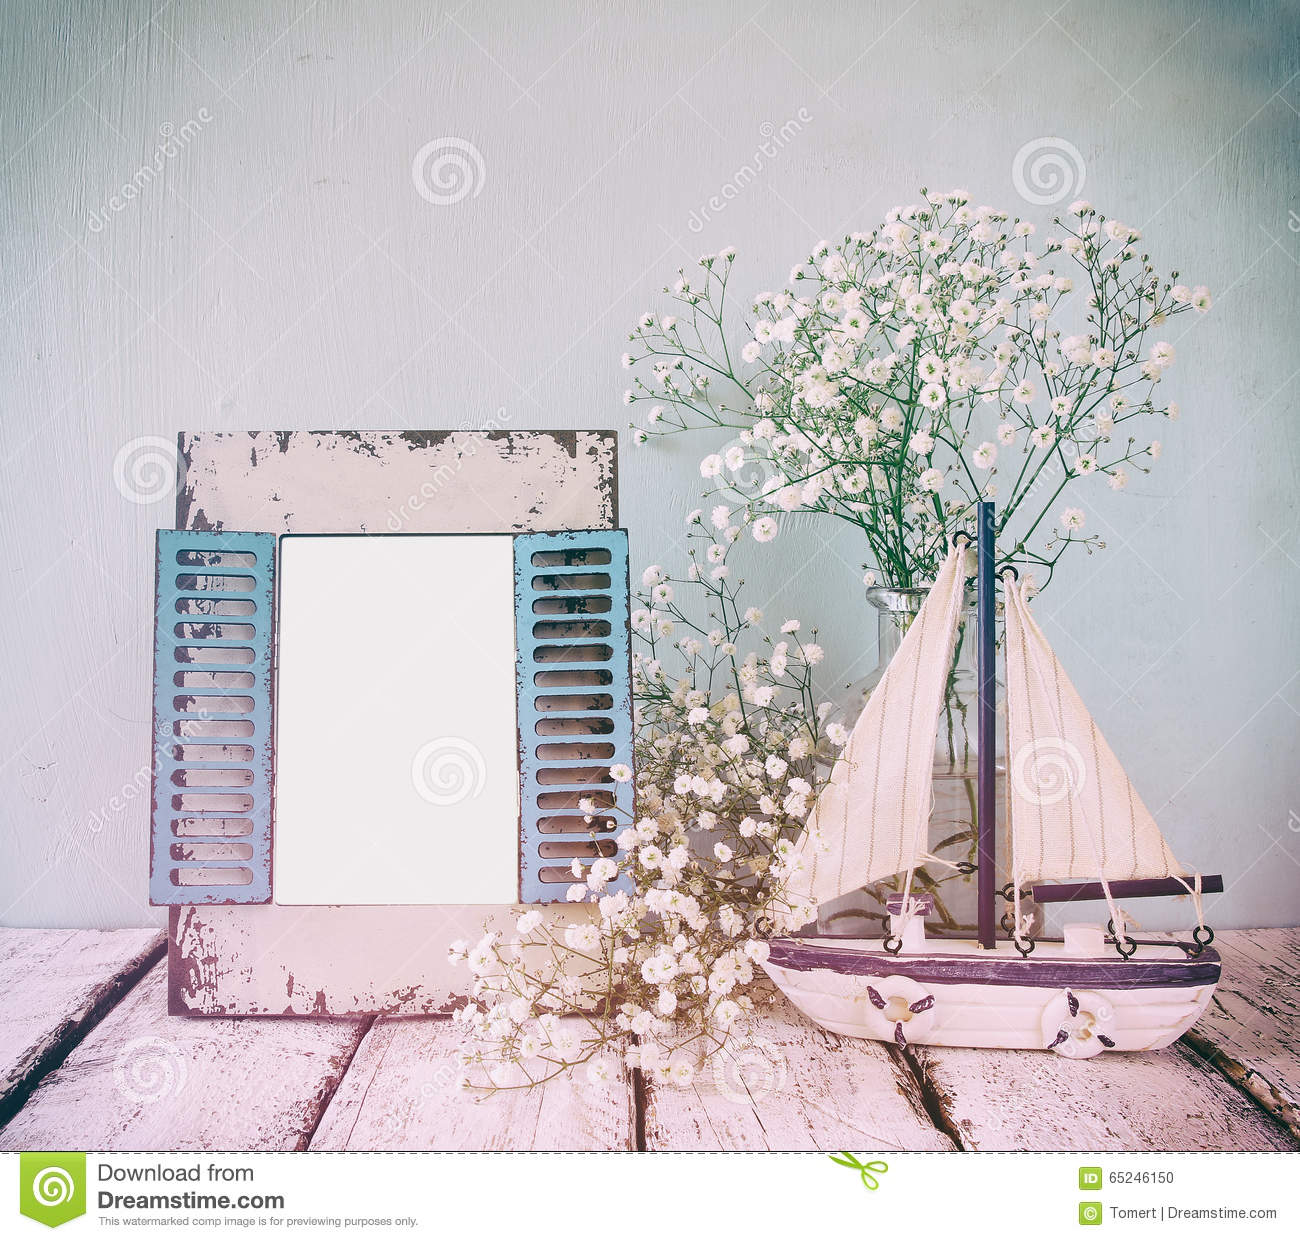 Old Vintage Wooden Frame, White Flowers And Sailing Boat On Wooden ...